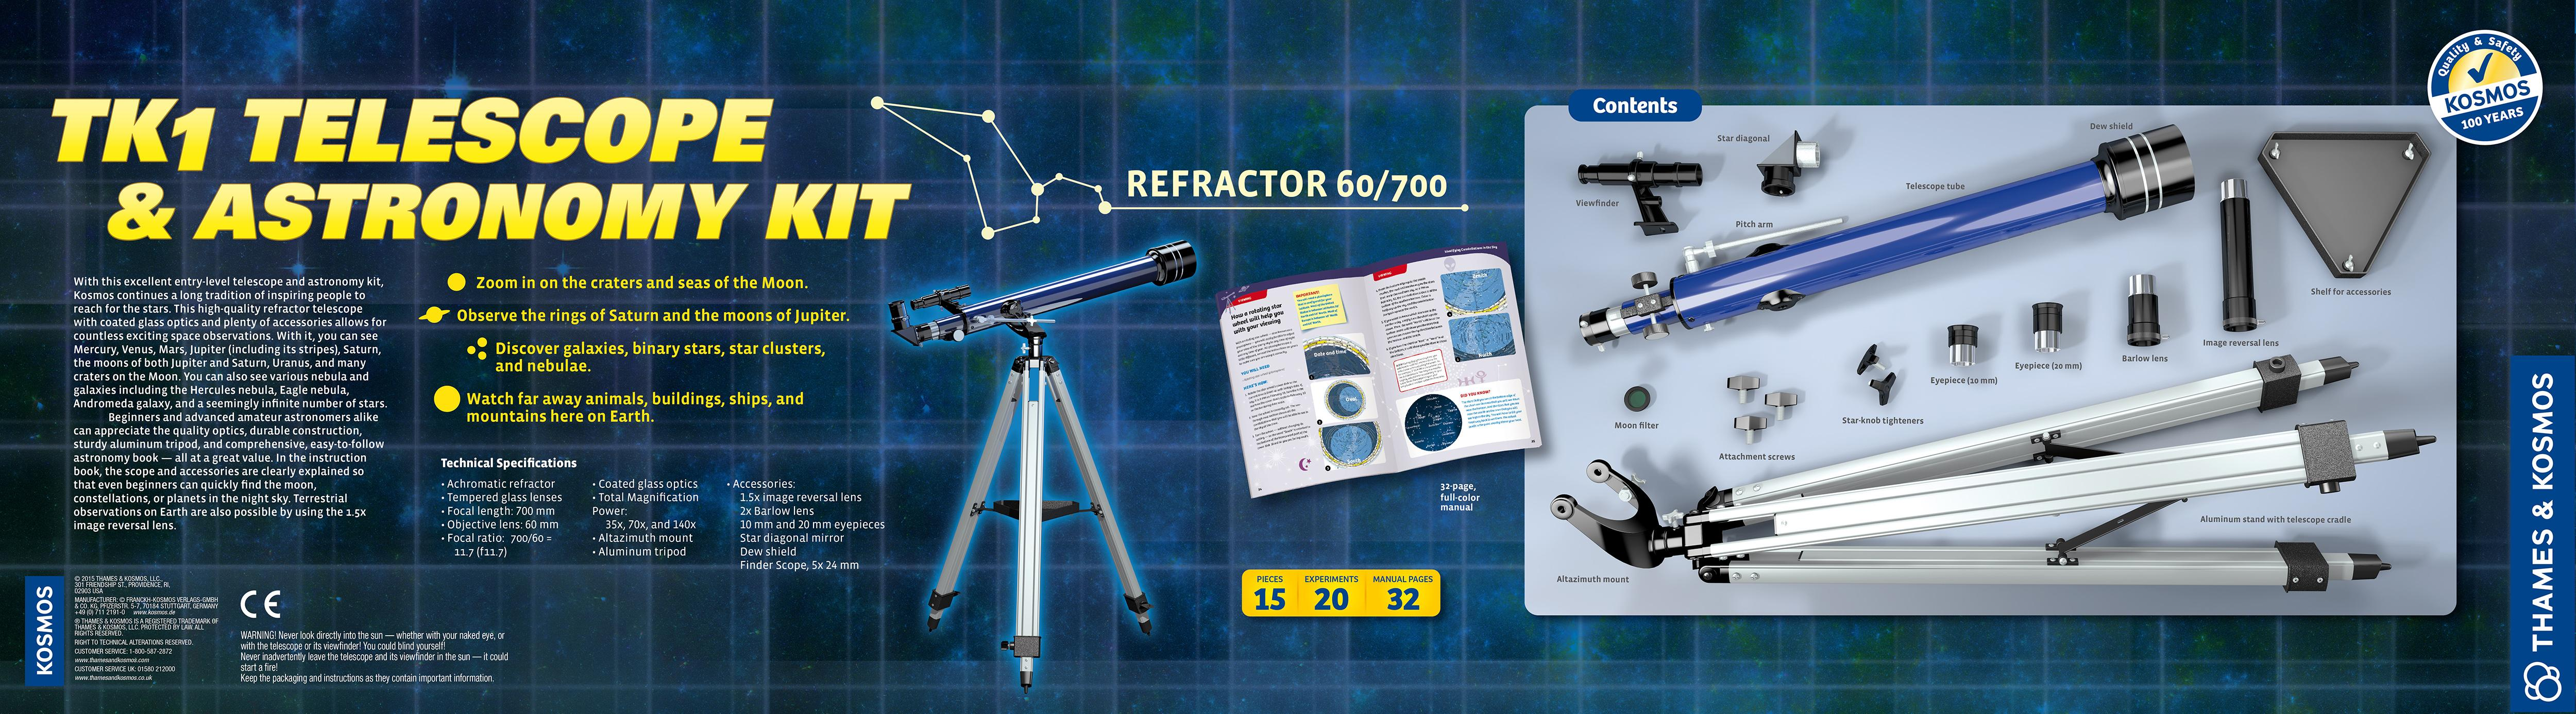 astronomy kits for teens - HD 5000×1386